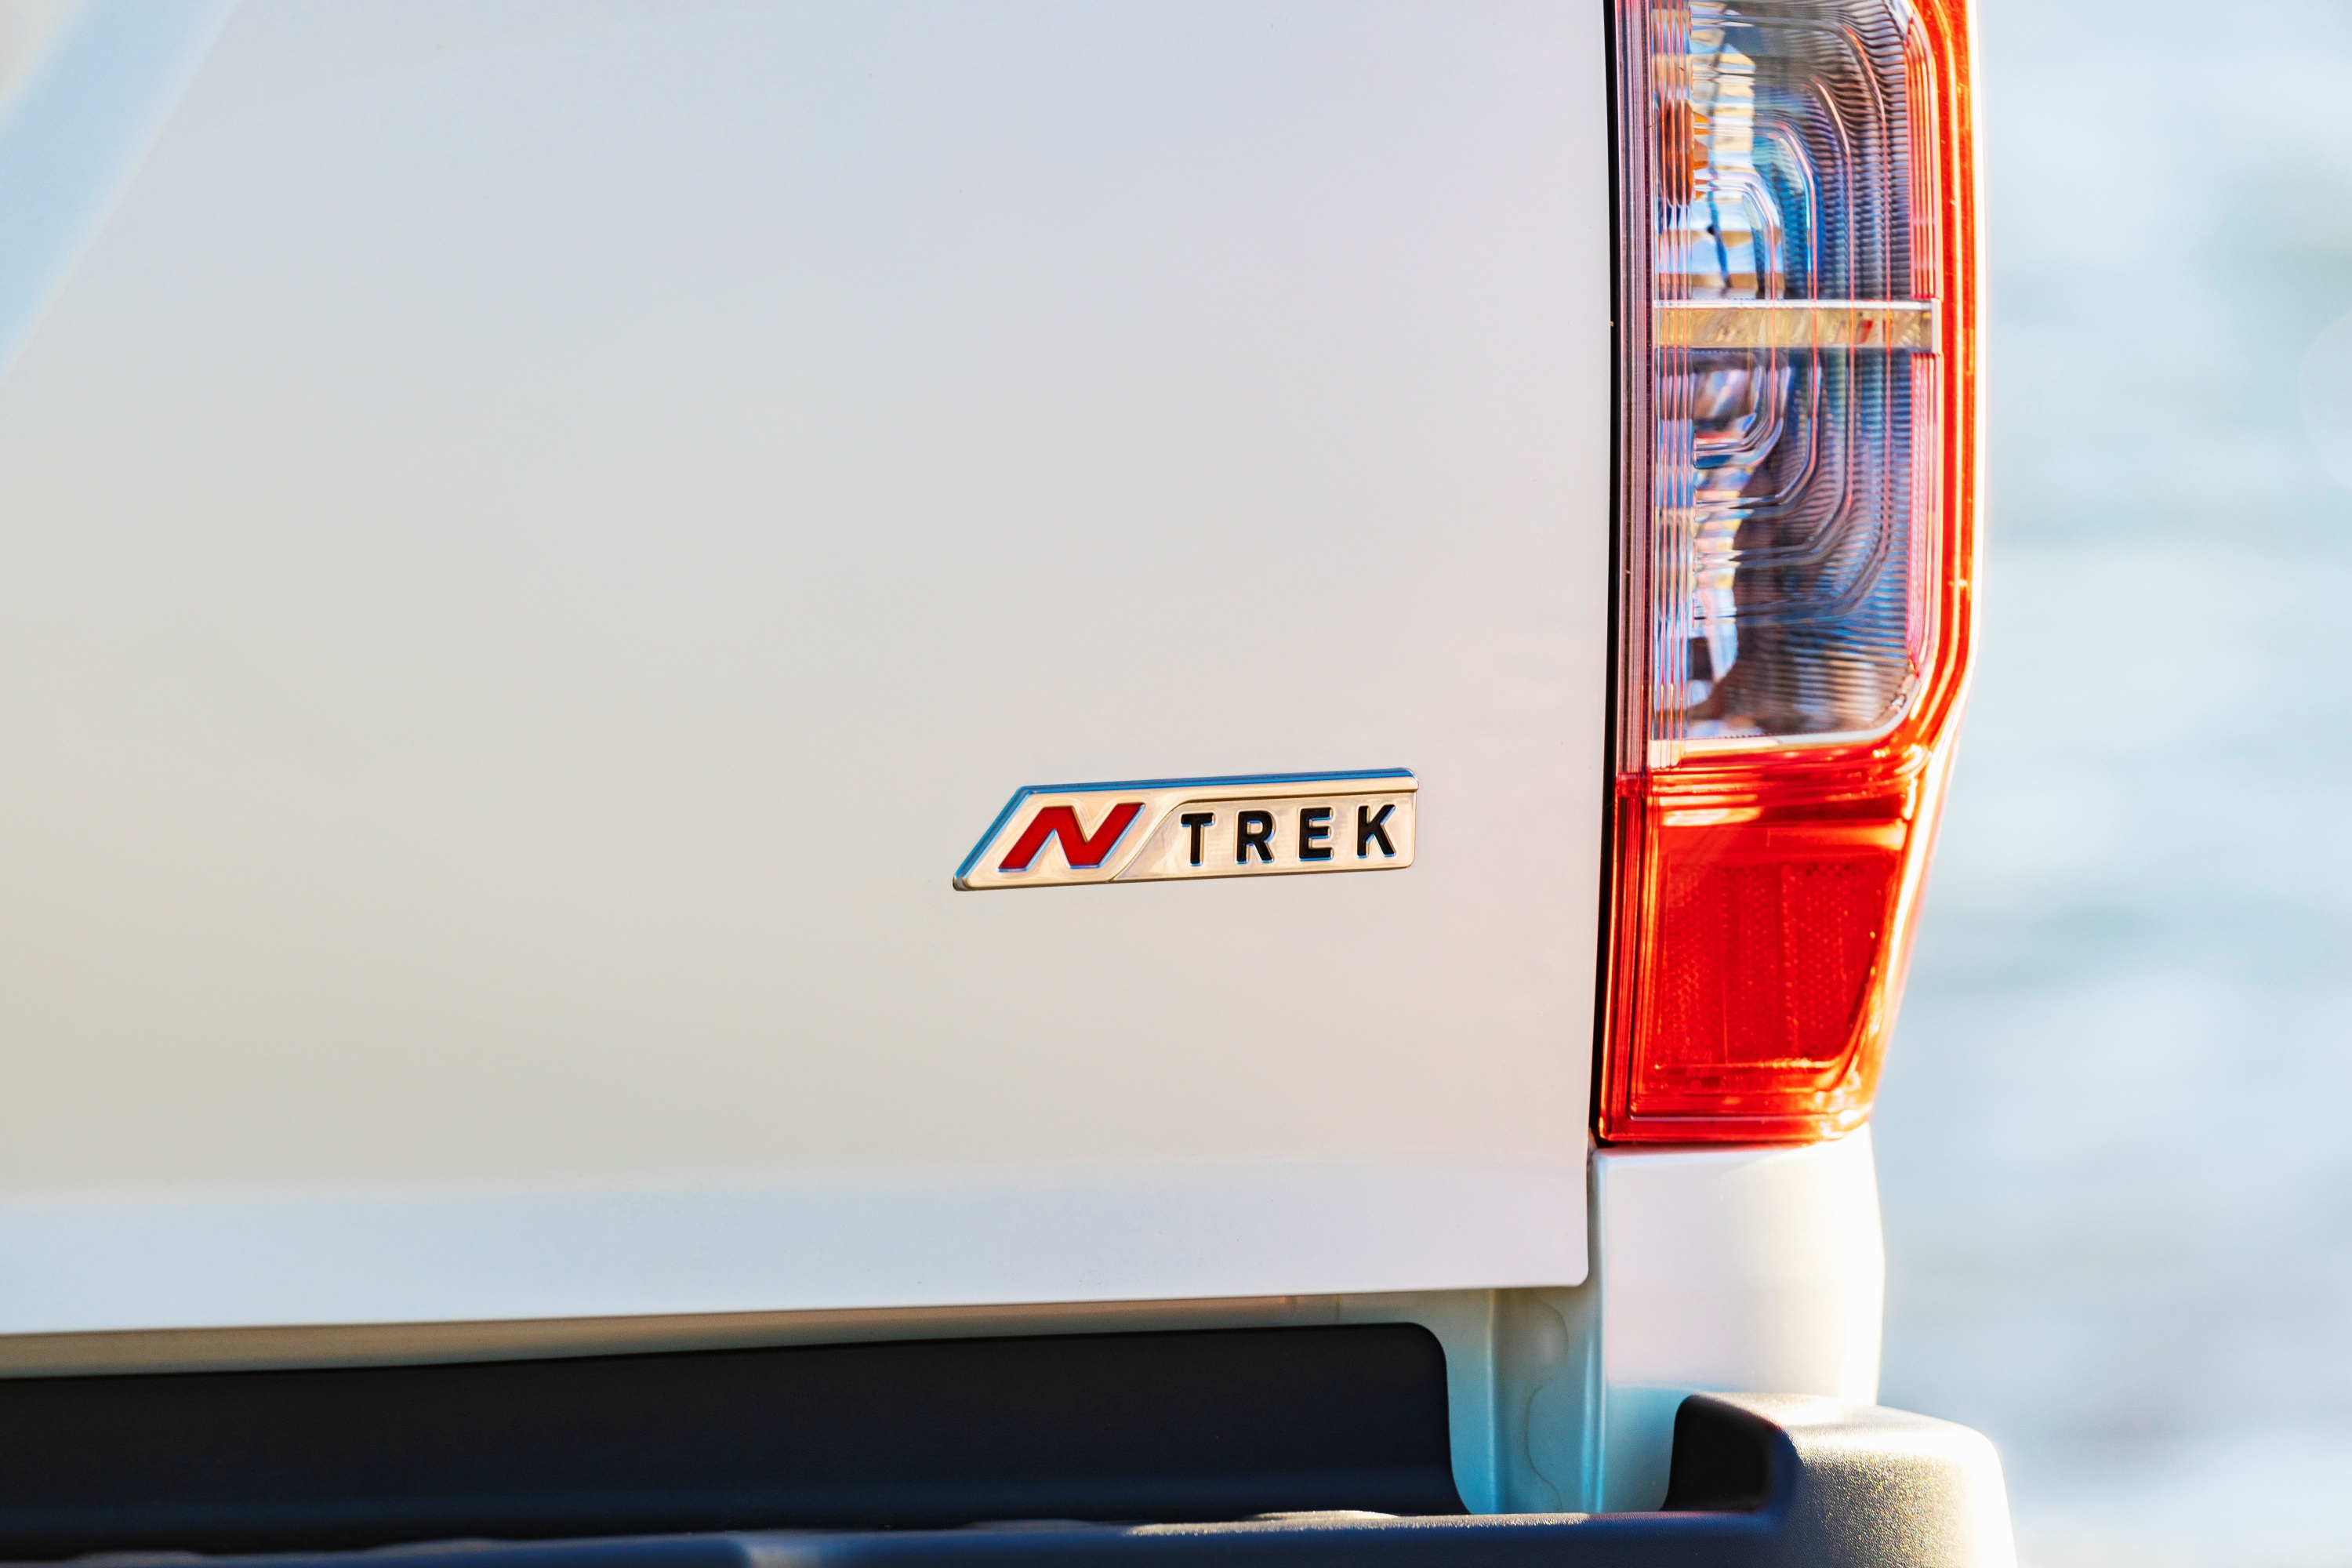 2019 Nissan Navara N-TREK rear badge